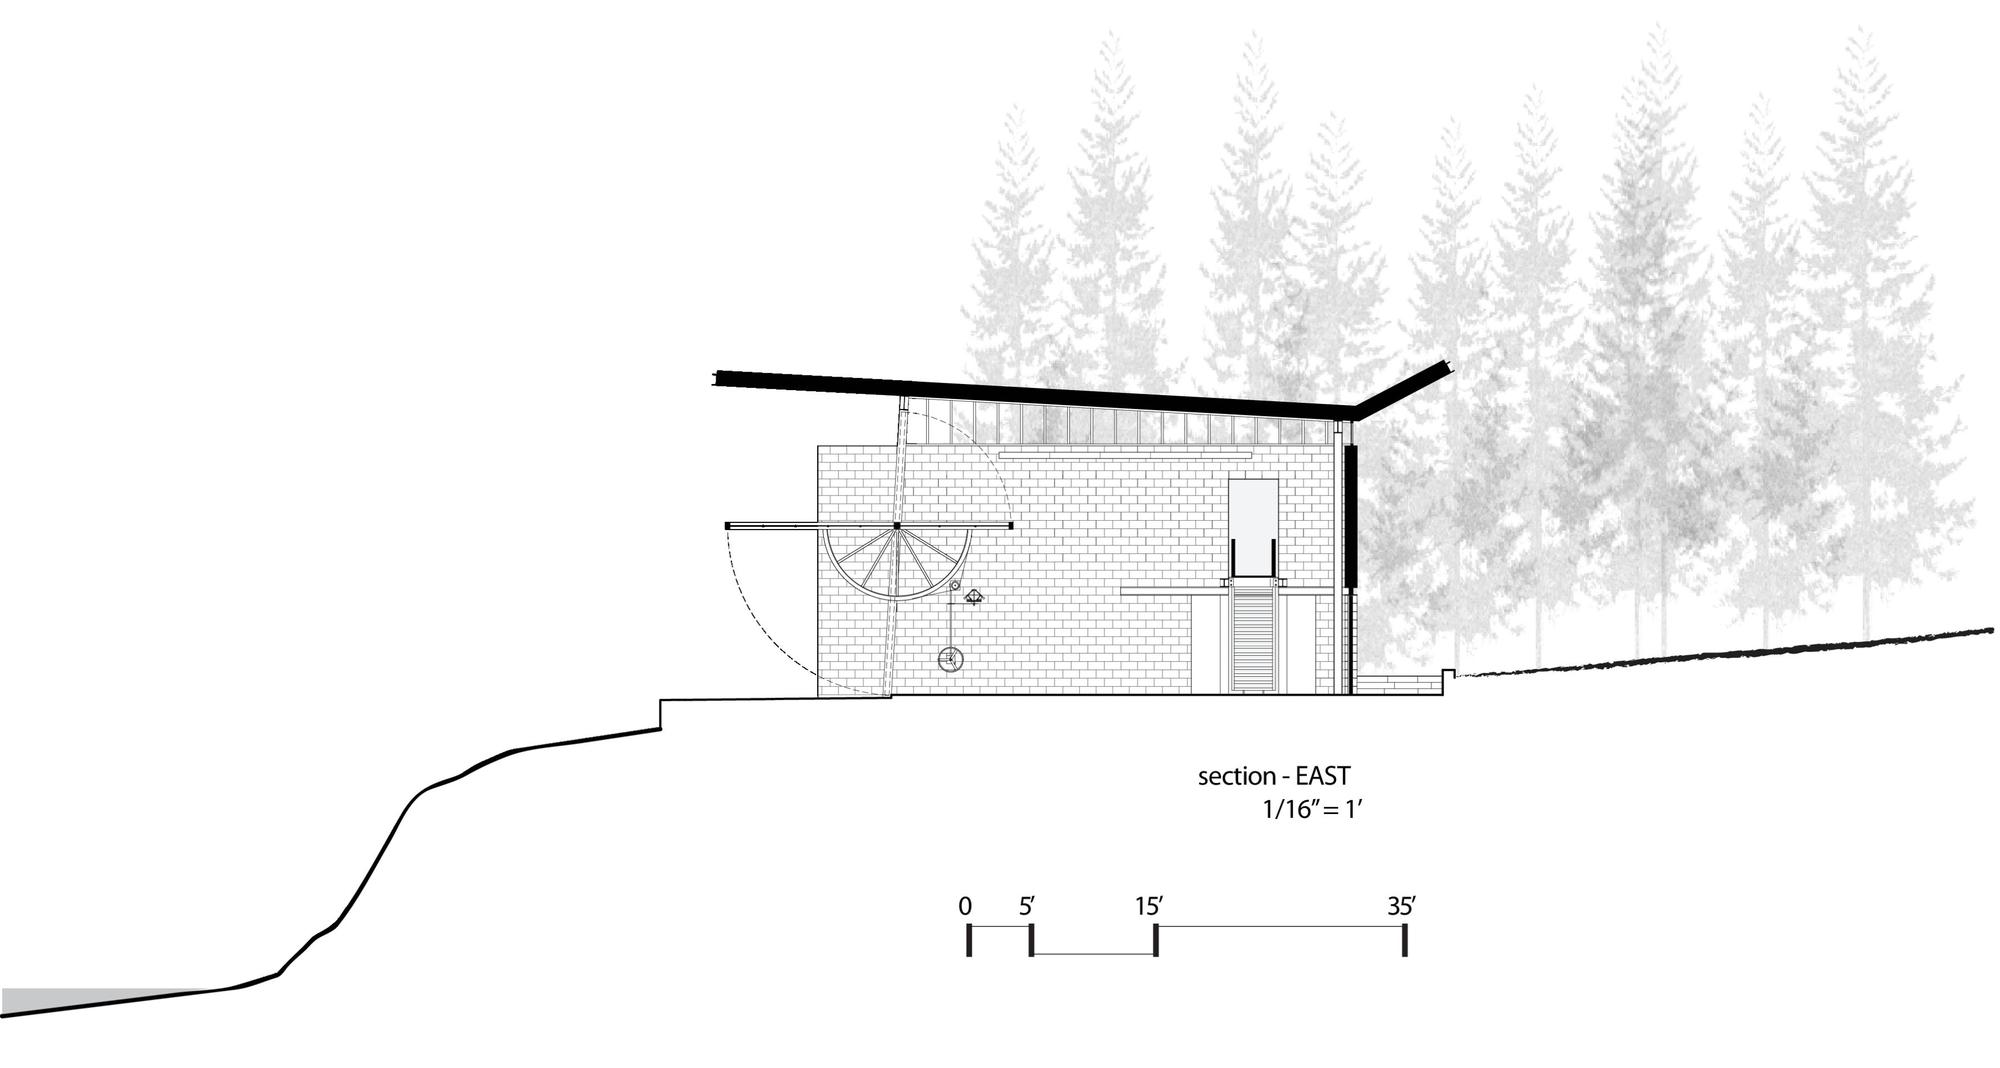 566f623de58ecee9c0000090 Chicken Point Cabin Olson Kundig Section on cabin plans